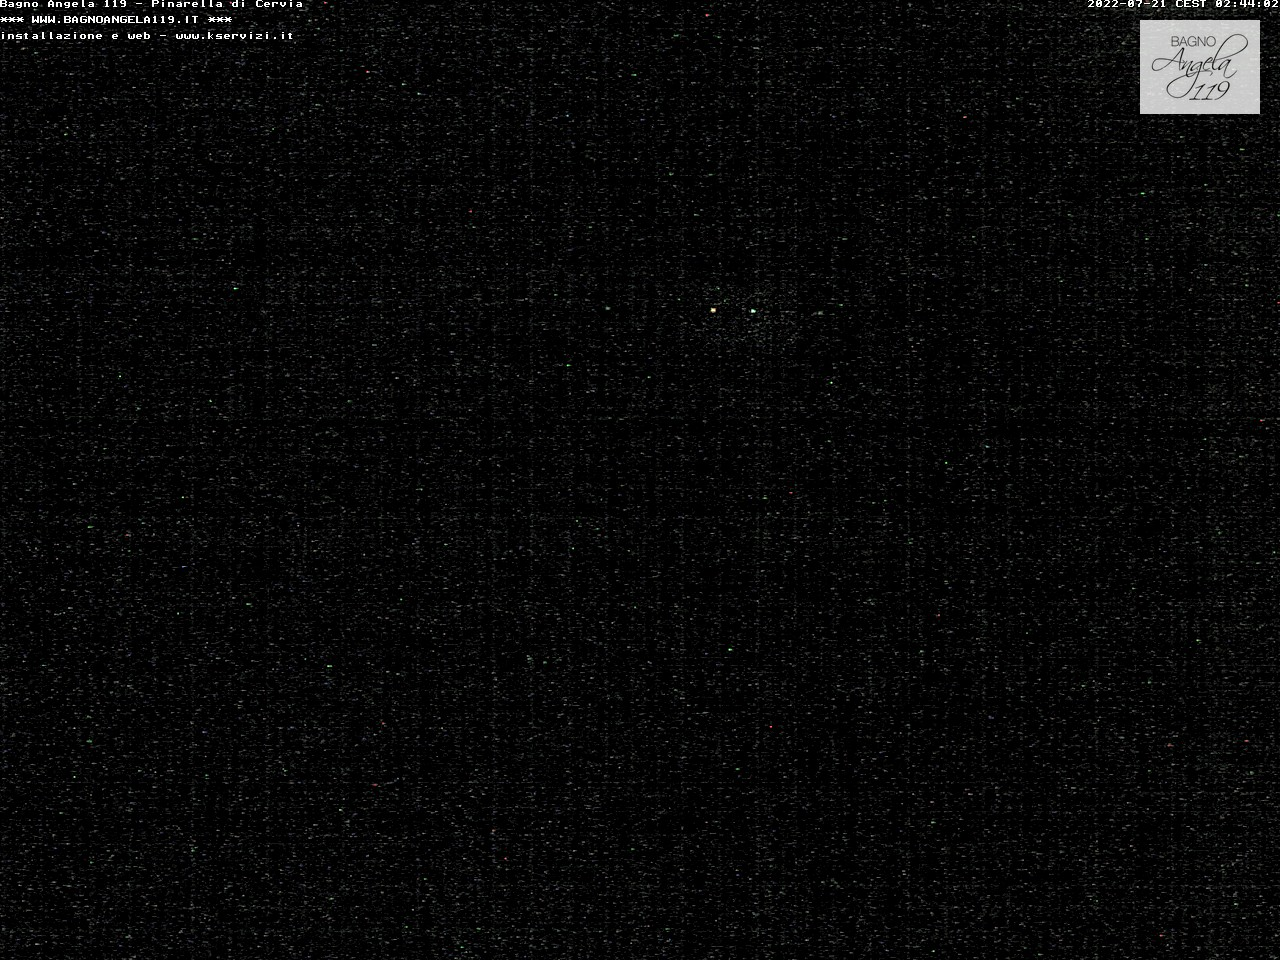 Webcam Pinarella di Cervia